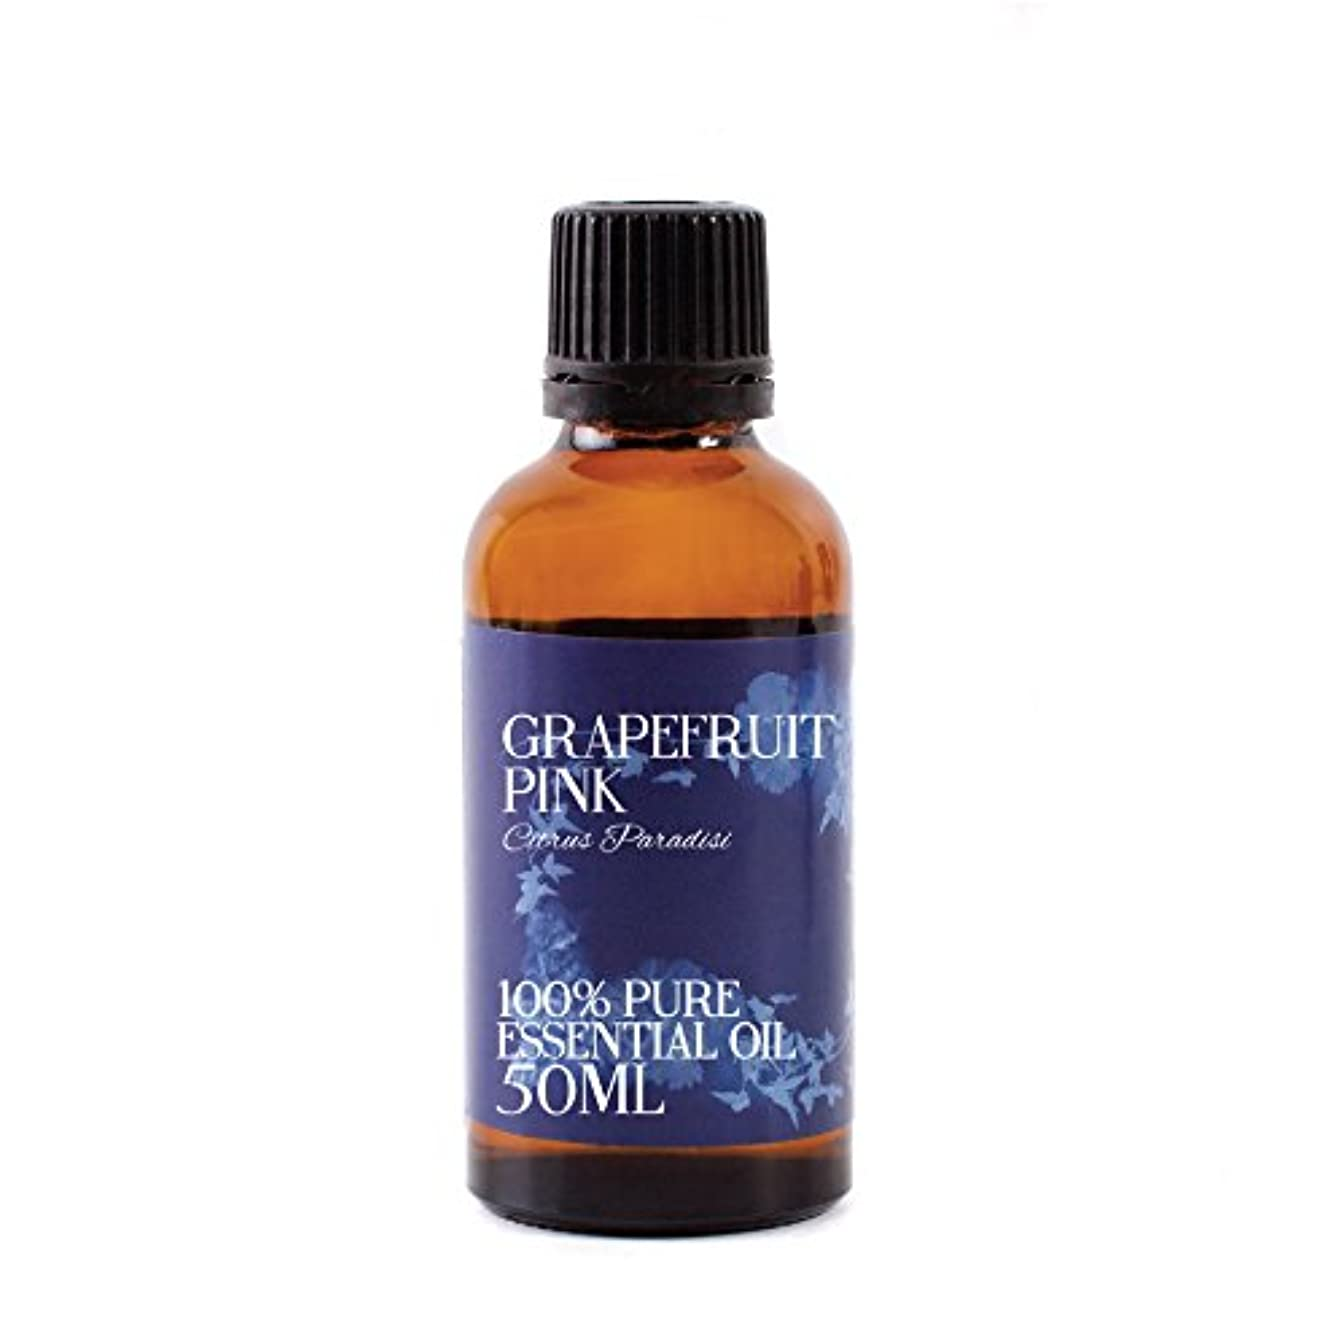 メール兵器庫正確さMystic Moments | Grapefruit Pink Essential Oil - 50ml - 100% Pure